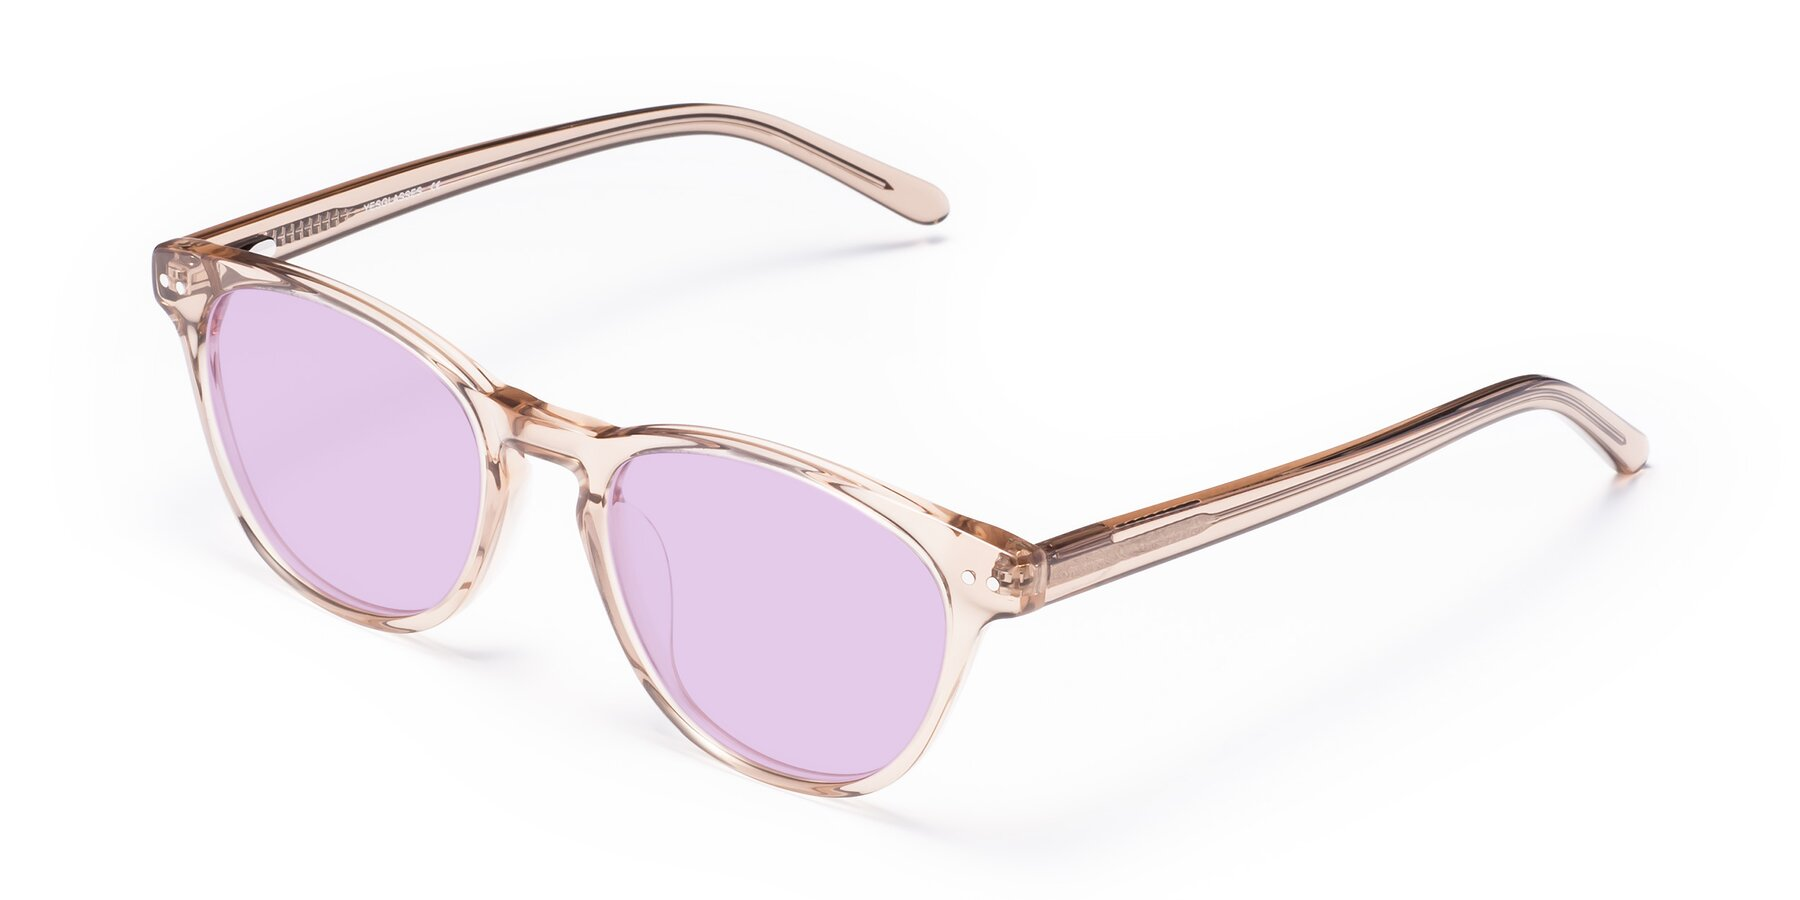 Angle of Blaze in light Brown with Light Purple Tinted Lenses